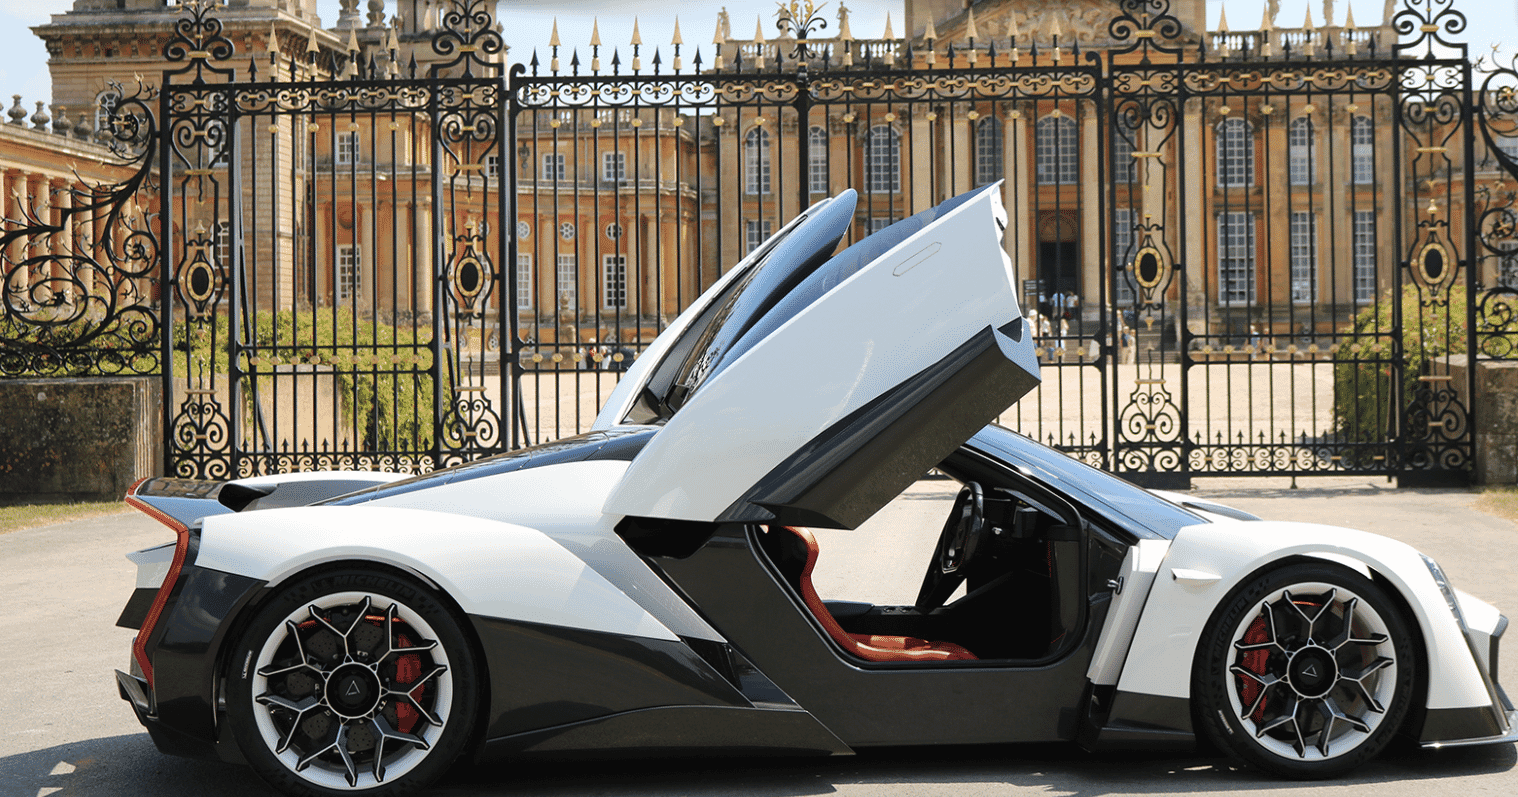 Dendrobium all electric hypercar at gates of Blenheim Palace, Salon Privé 2018